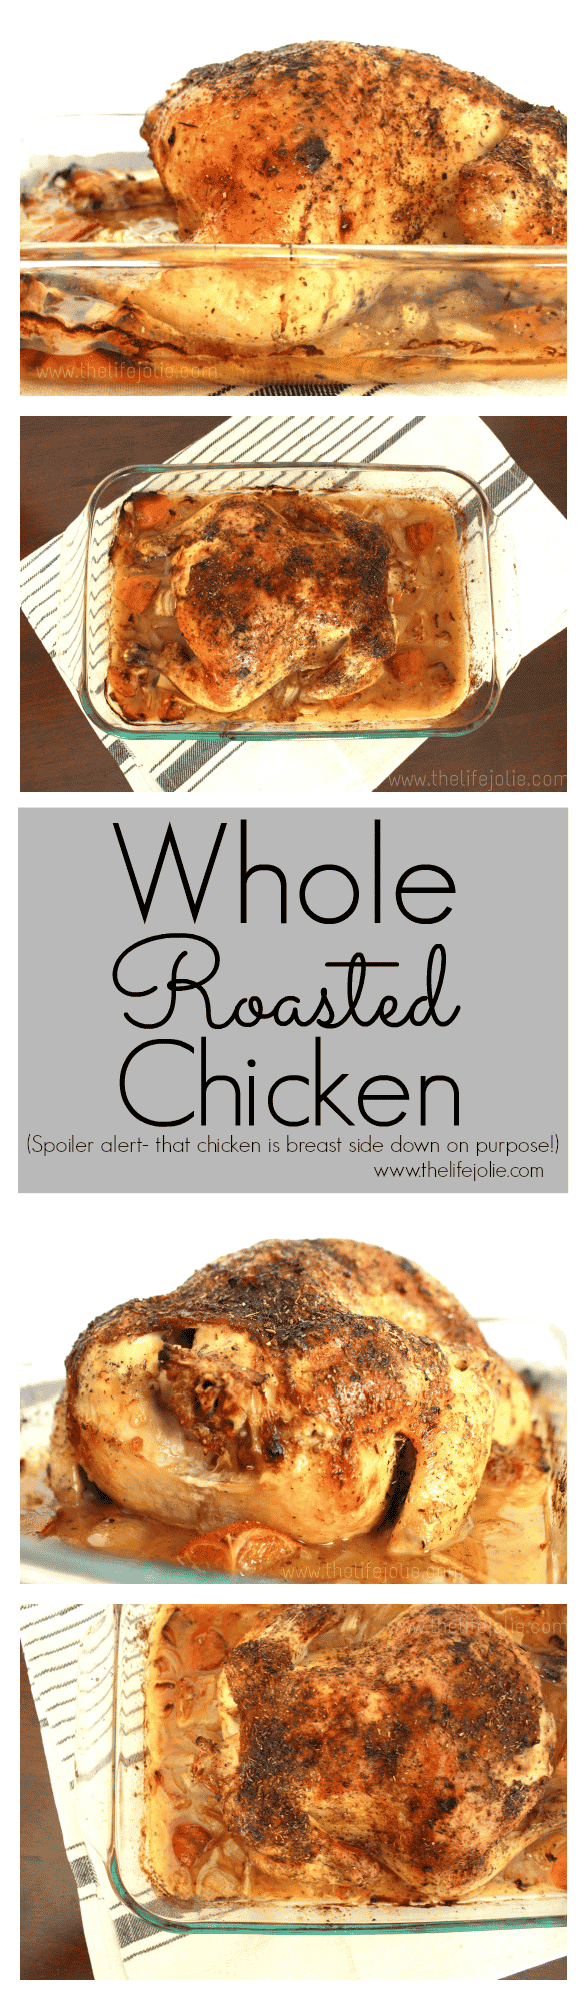 This is the most simple delicious whole roast chicken recipe- there is no extra, unnecessary work but the results are super delicious- even the white meat is super tender and succulent! This recipe is fool-proof!